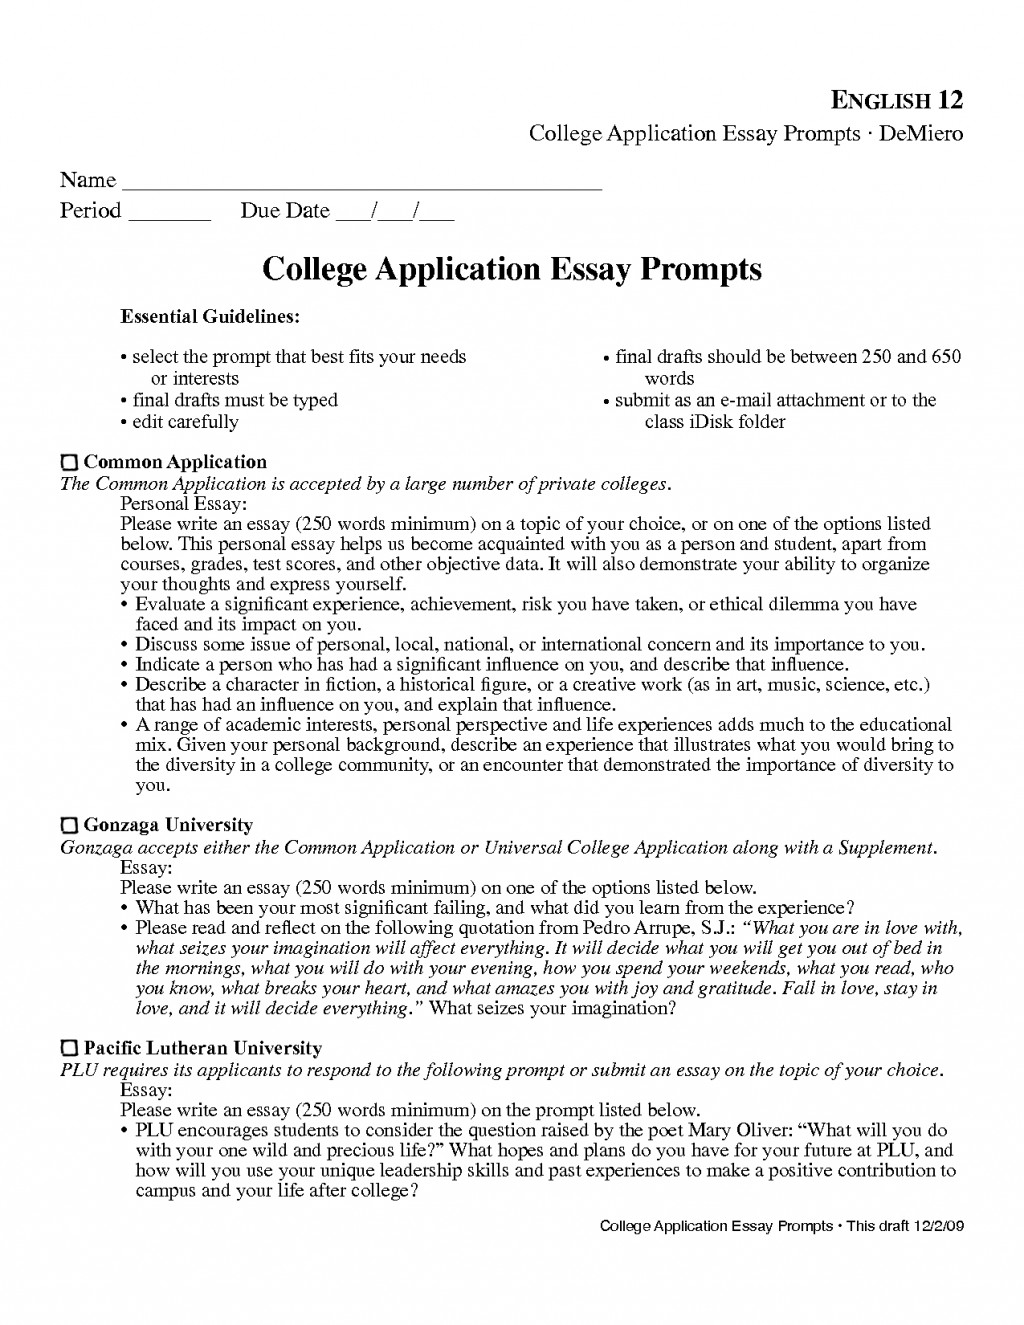 008 Essay Example Common Application Format Printables Corner App College Prompts Exampl Topics Examples Rare 2015-16 Large